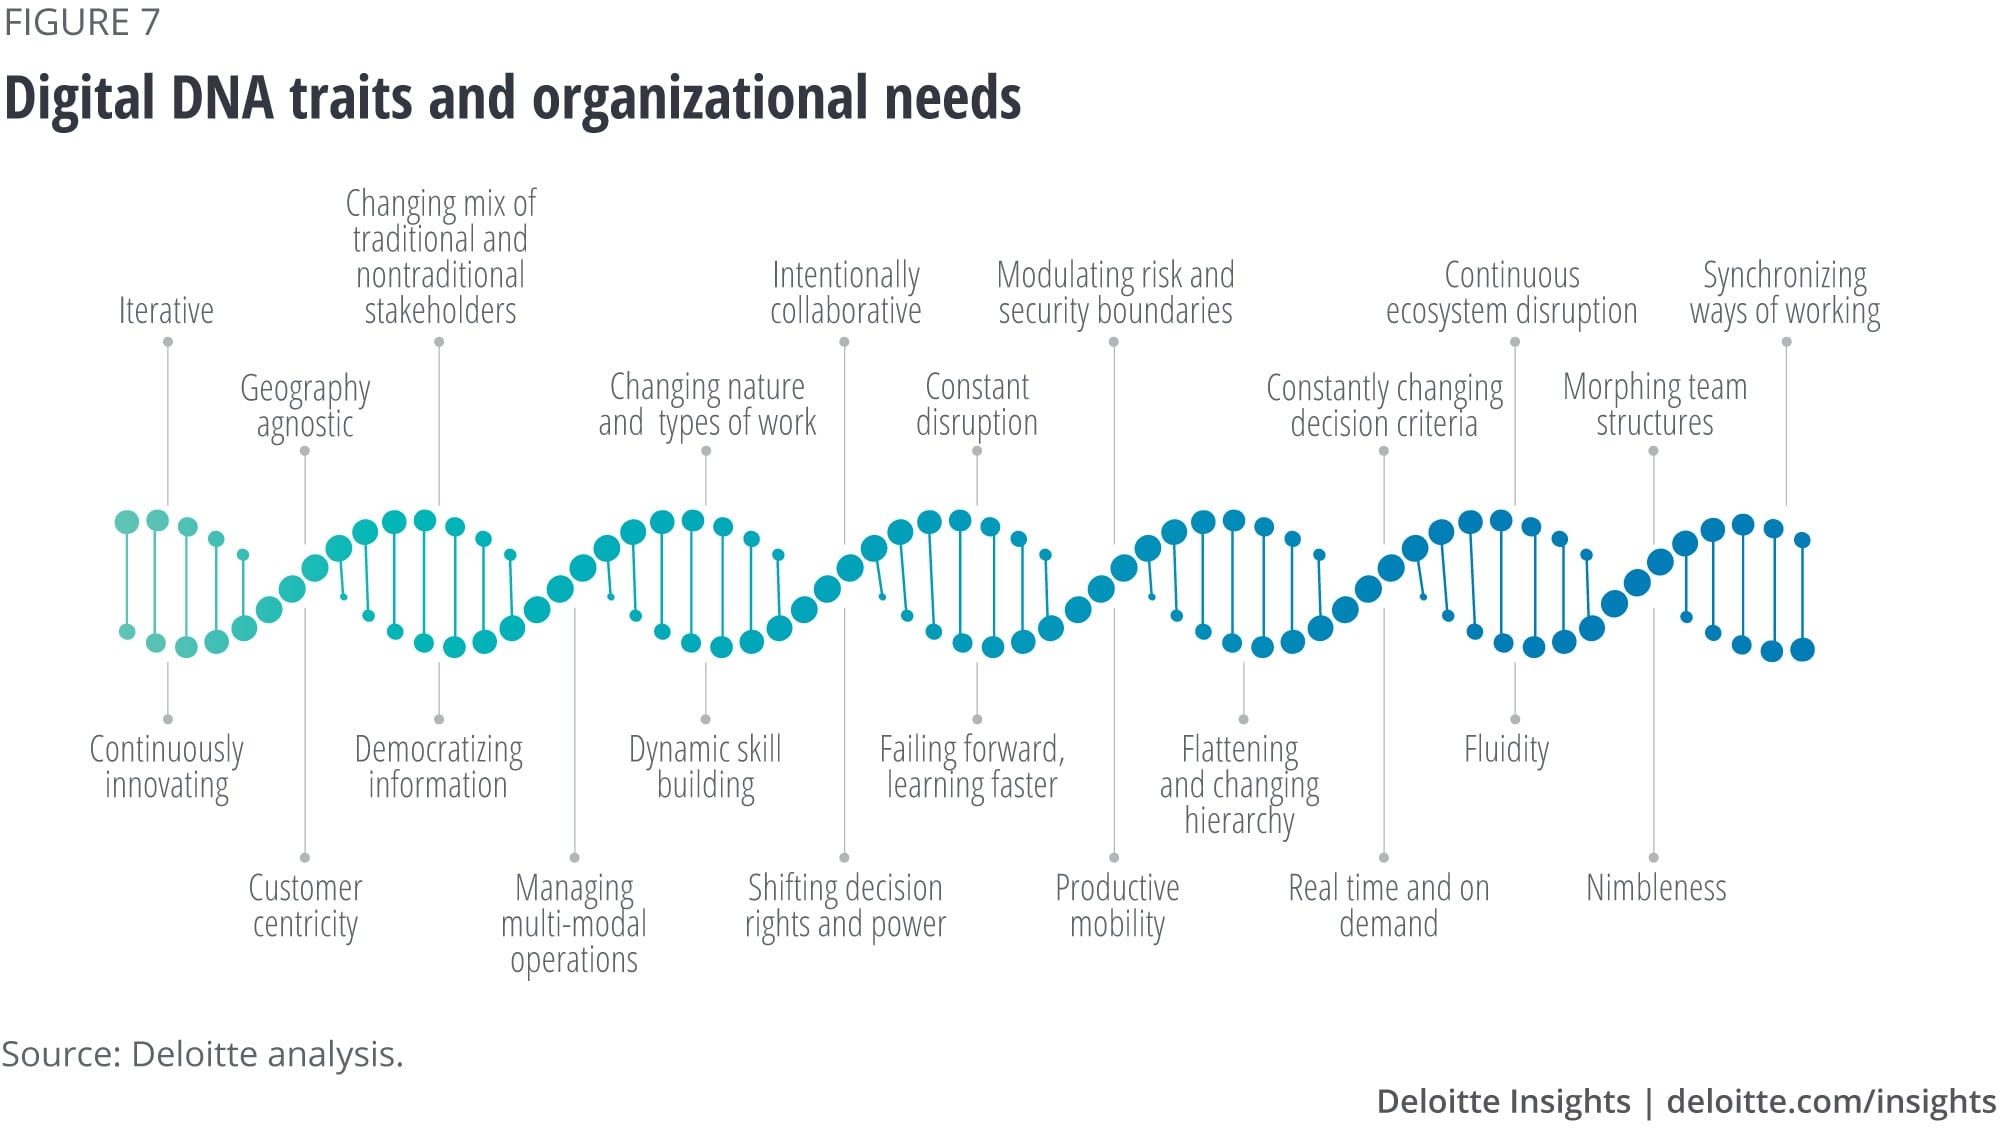 Digital DNA traits and organizational needs